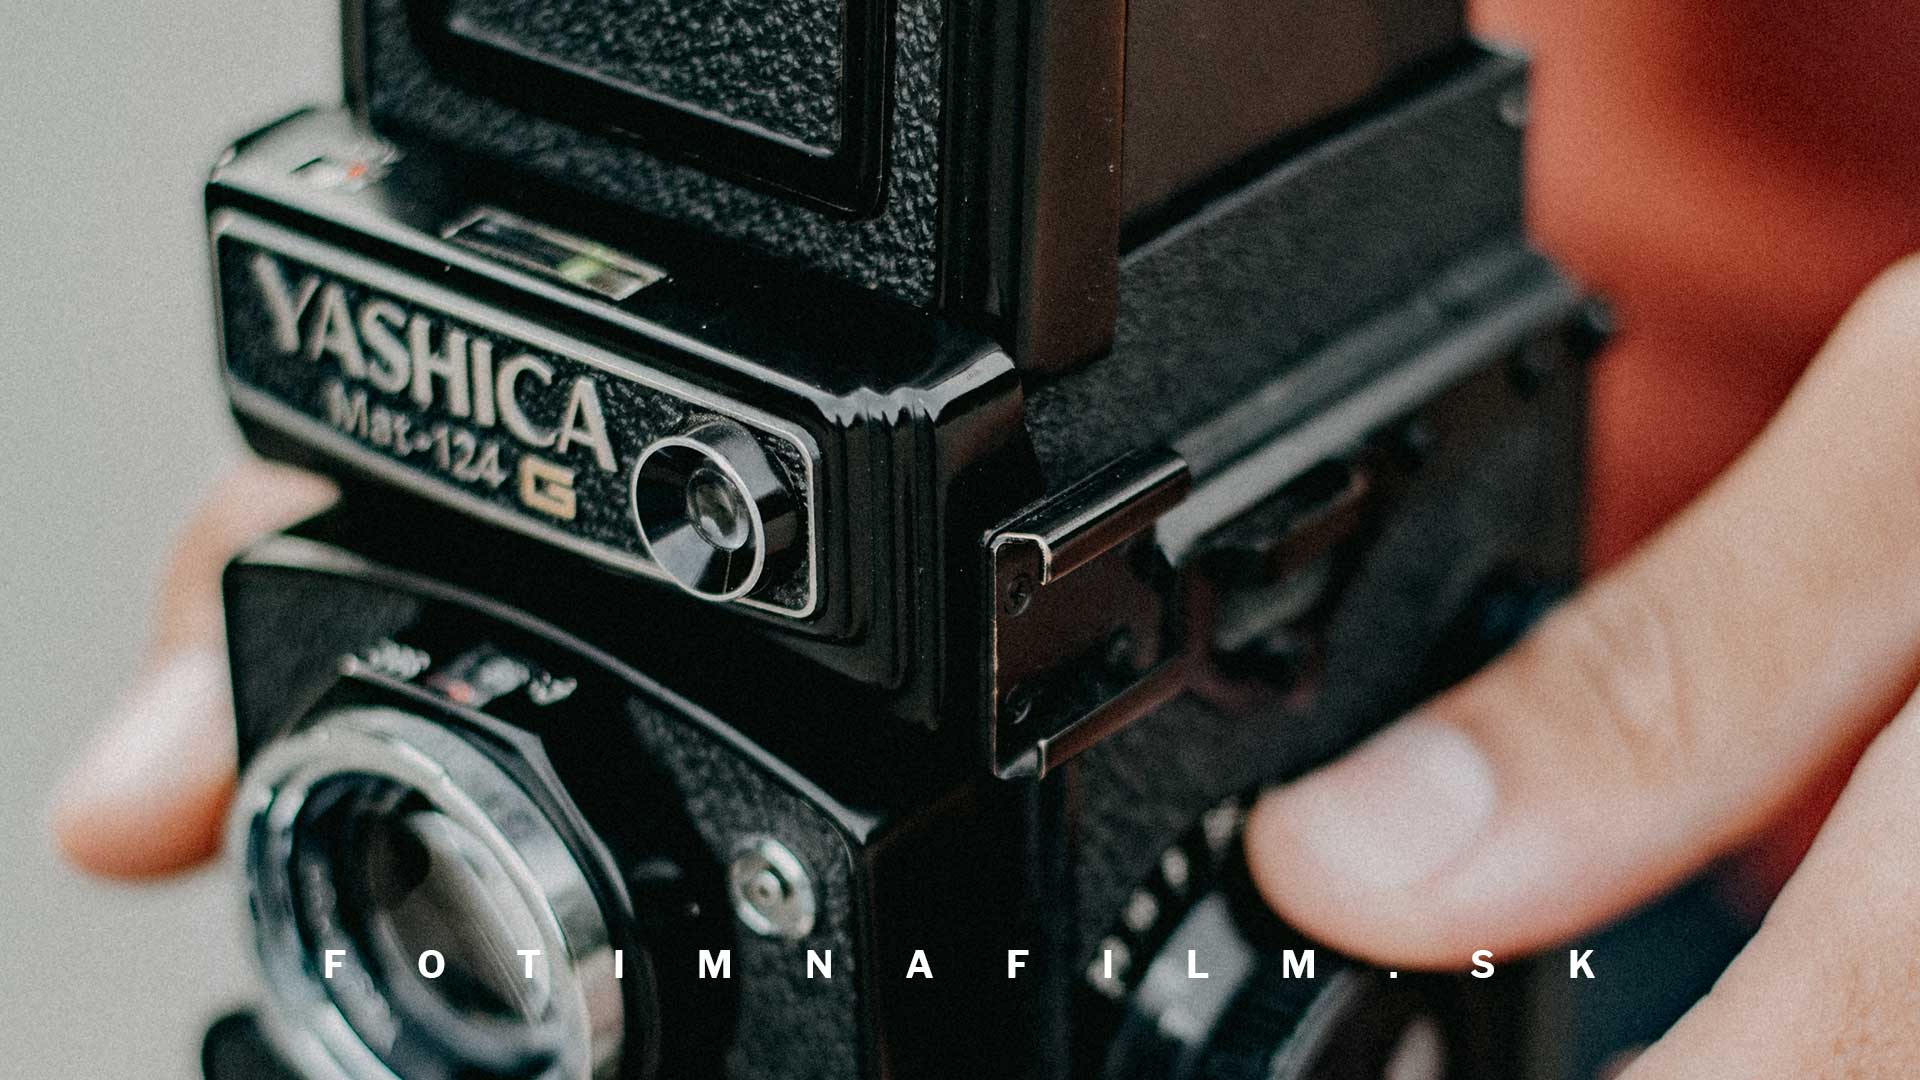 yashica mat 124g detail lightmeter